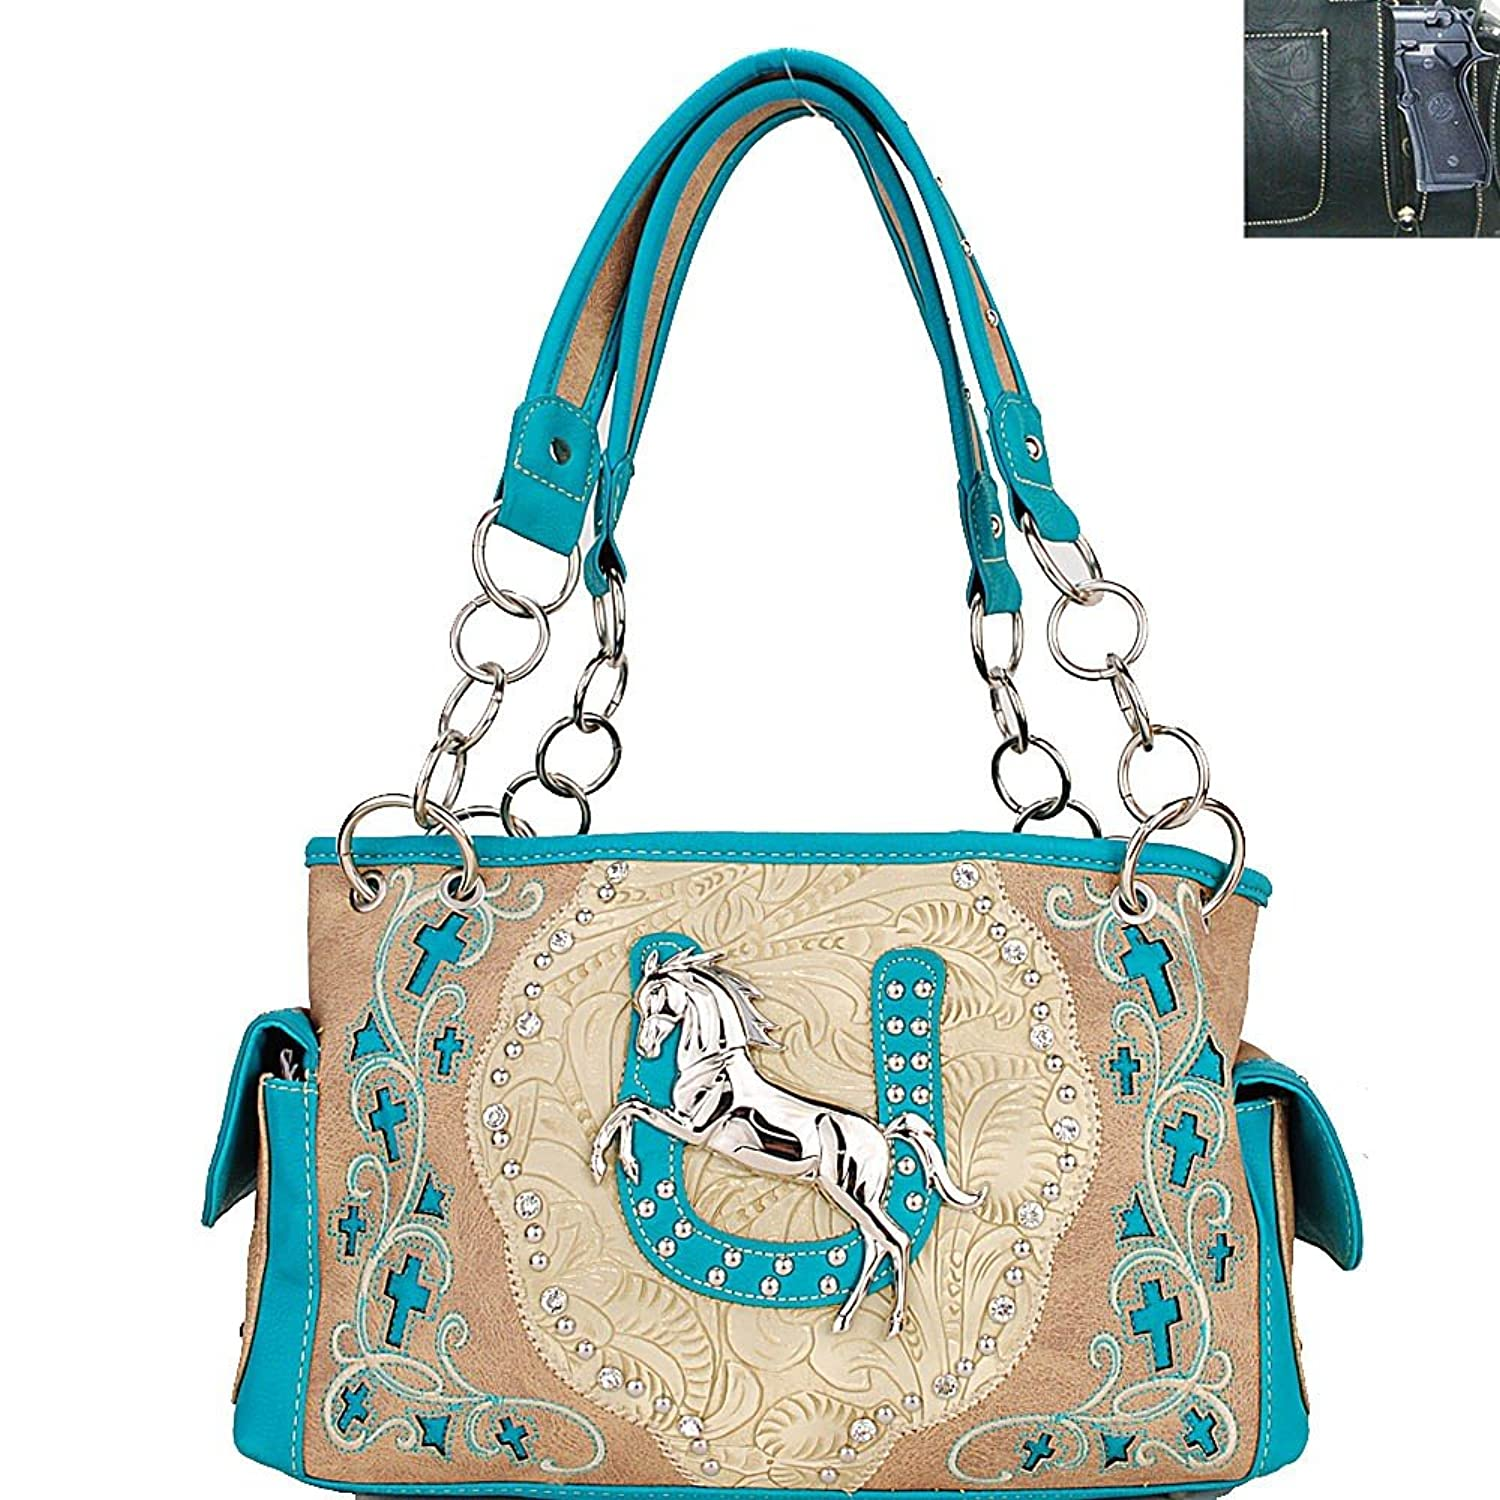 Paradise Western Concealed Carry Gun Horseshoe Horse Shoulder Bag Handbag Rhinestone Purse Or Wallet